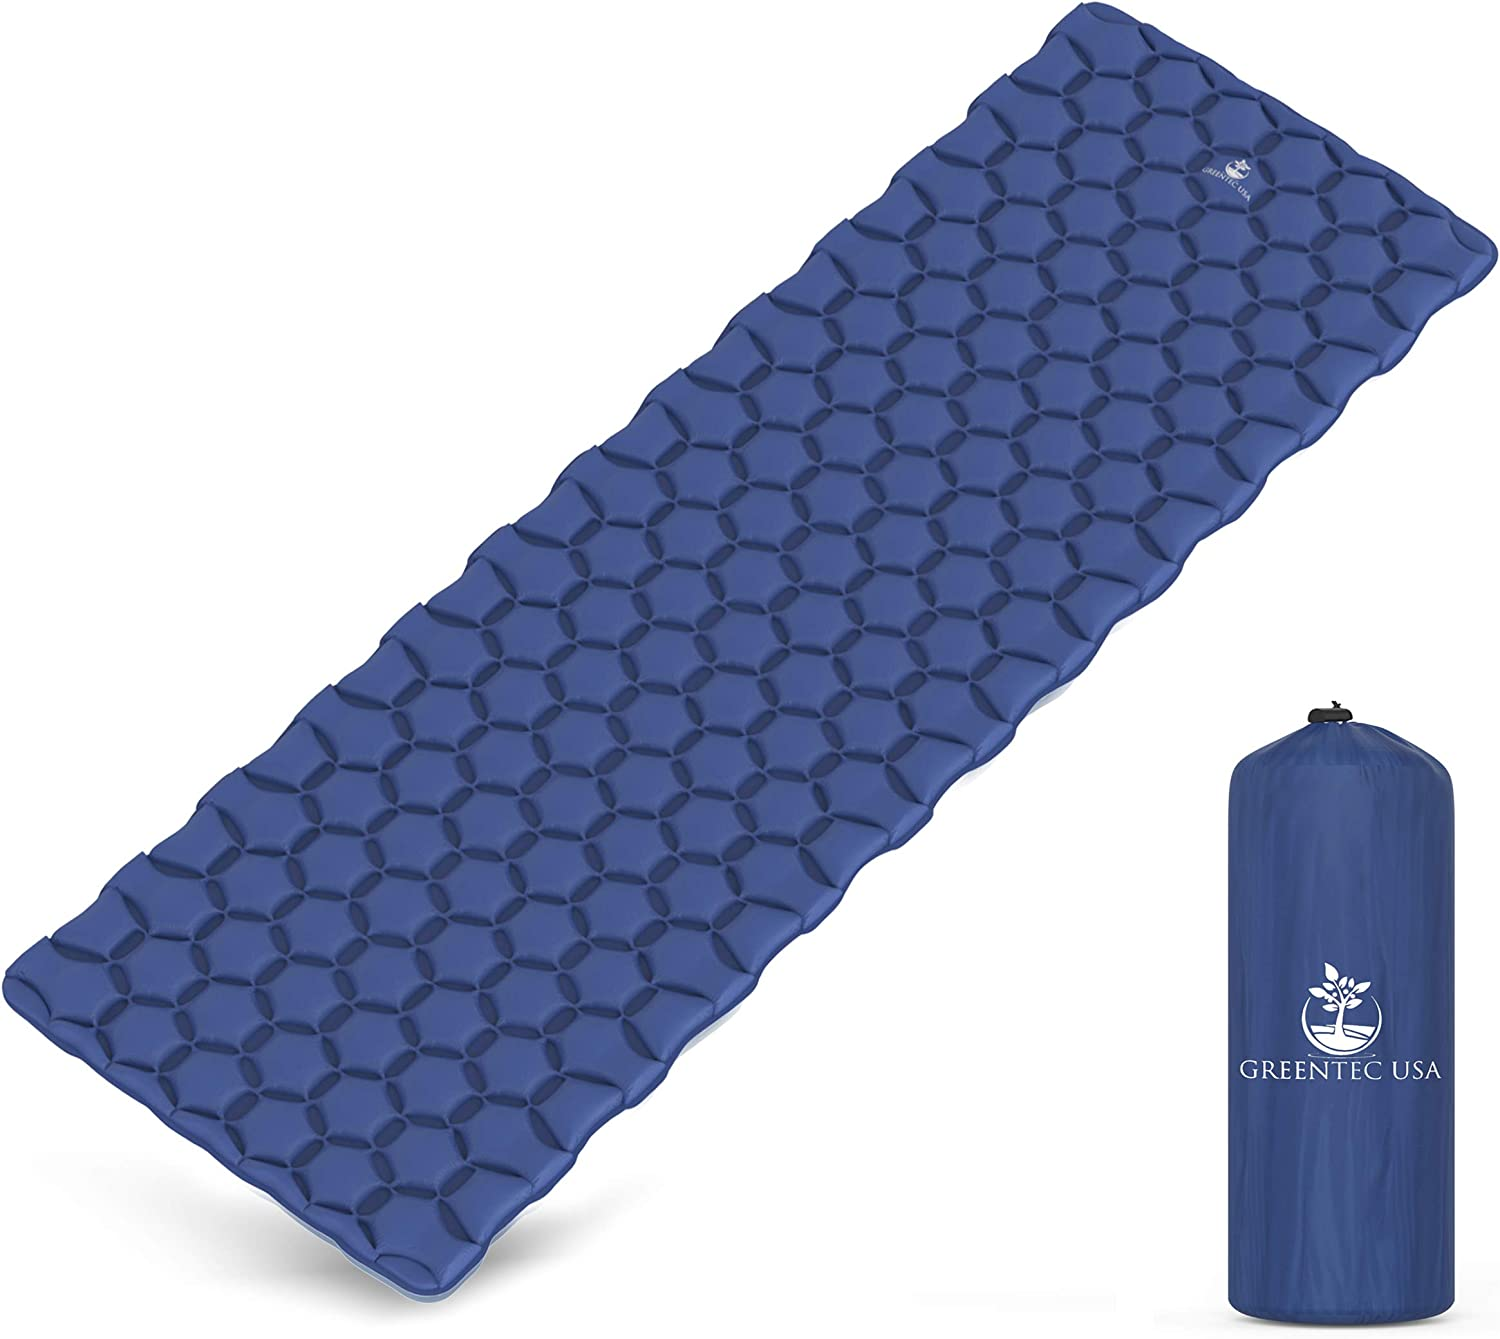 GREENTEC USA Premium Ultralight Sleeping Pad - Inflatable Compact Sleeping Mat Camping, Hiking Backpacking - Lightweight, Comfortable Durable - Works Perfectly Underneath Any Style Sleeping Bag